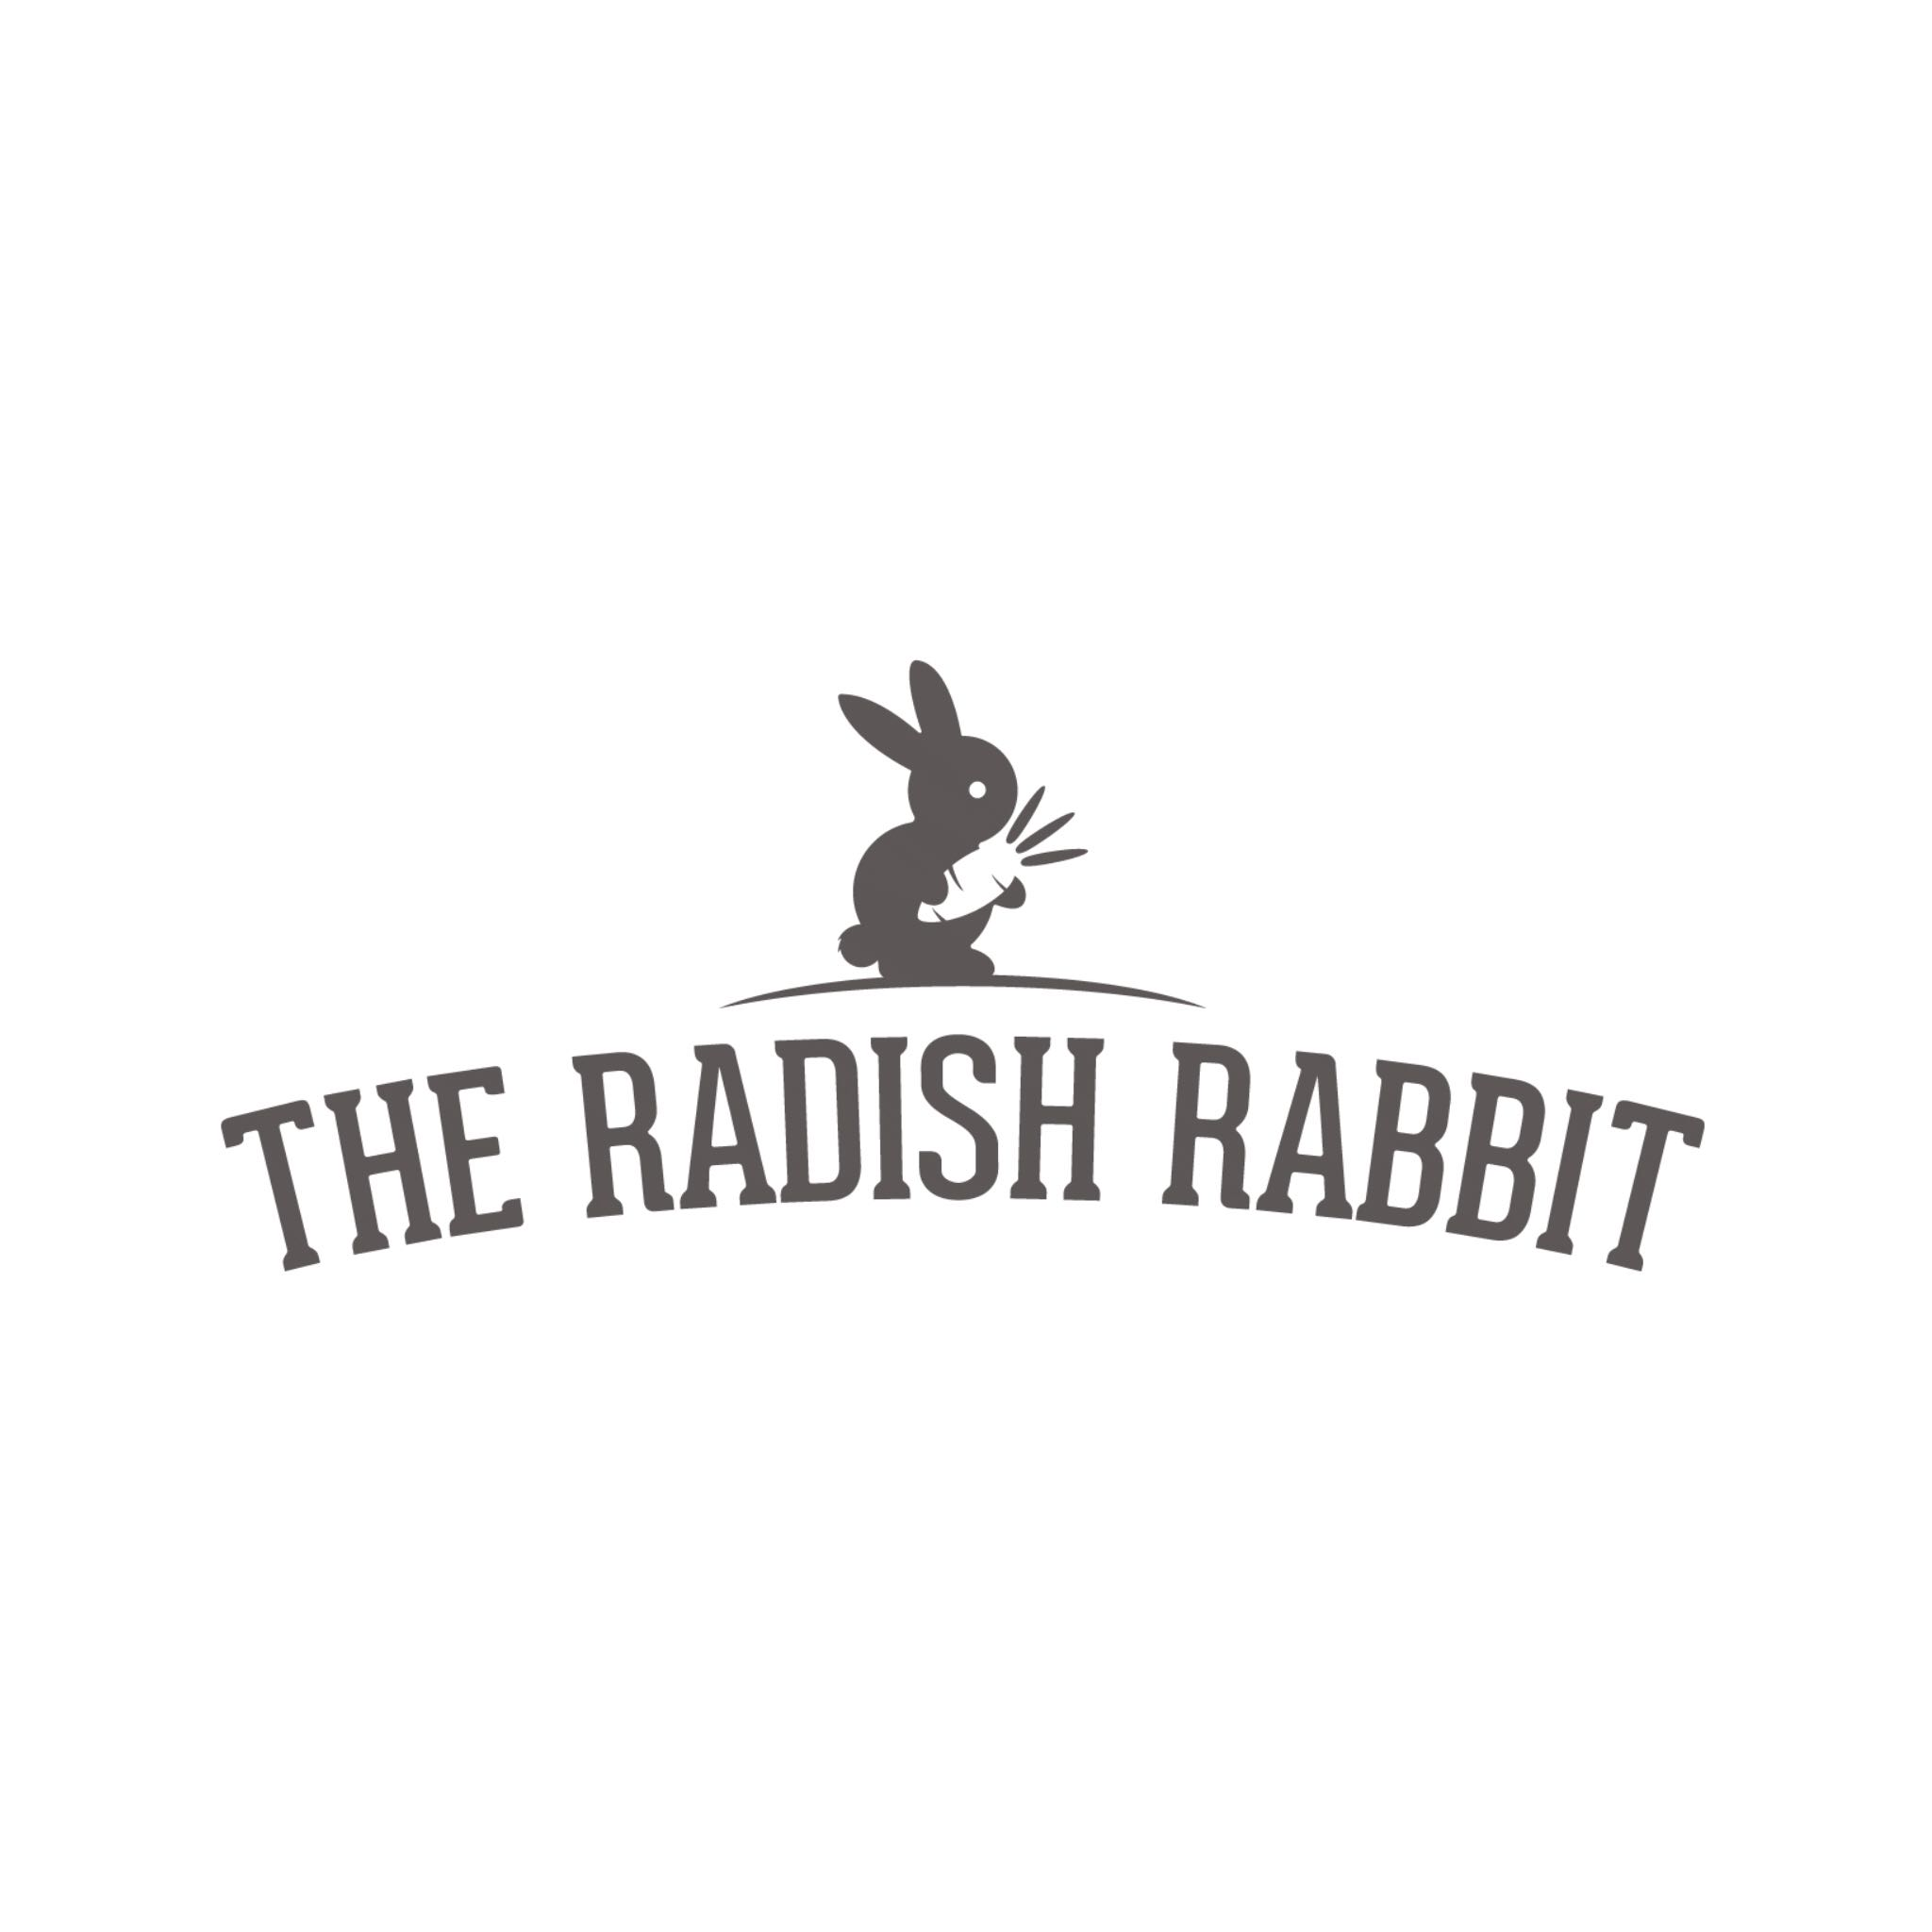 theradishrabbit